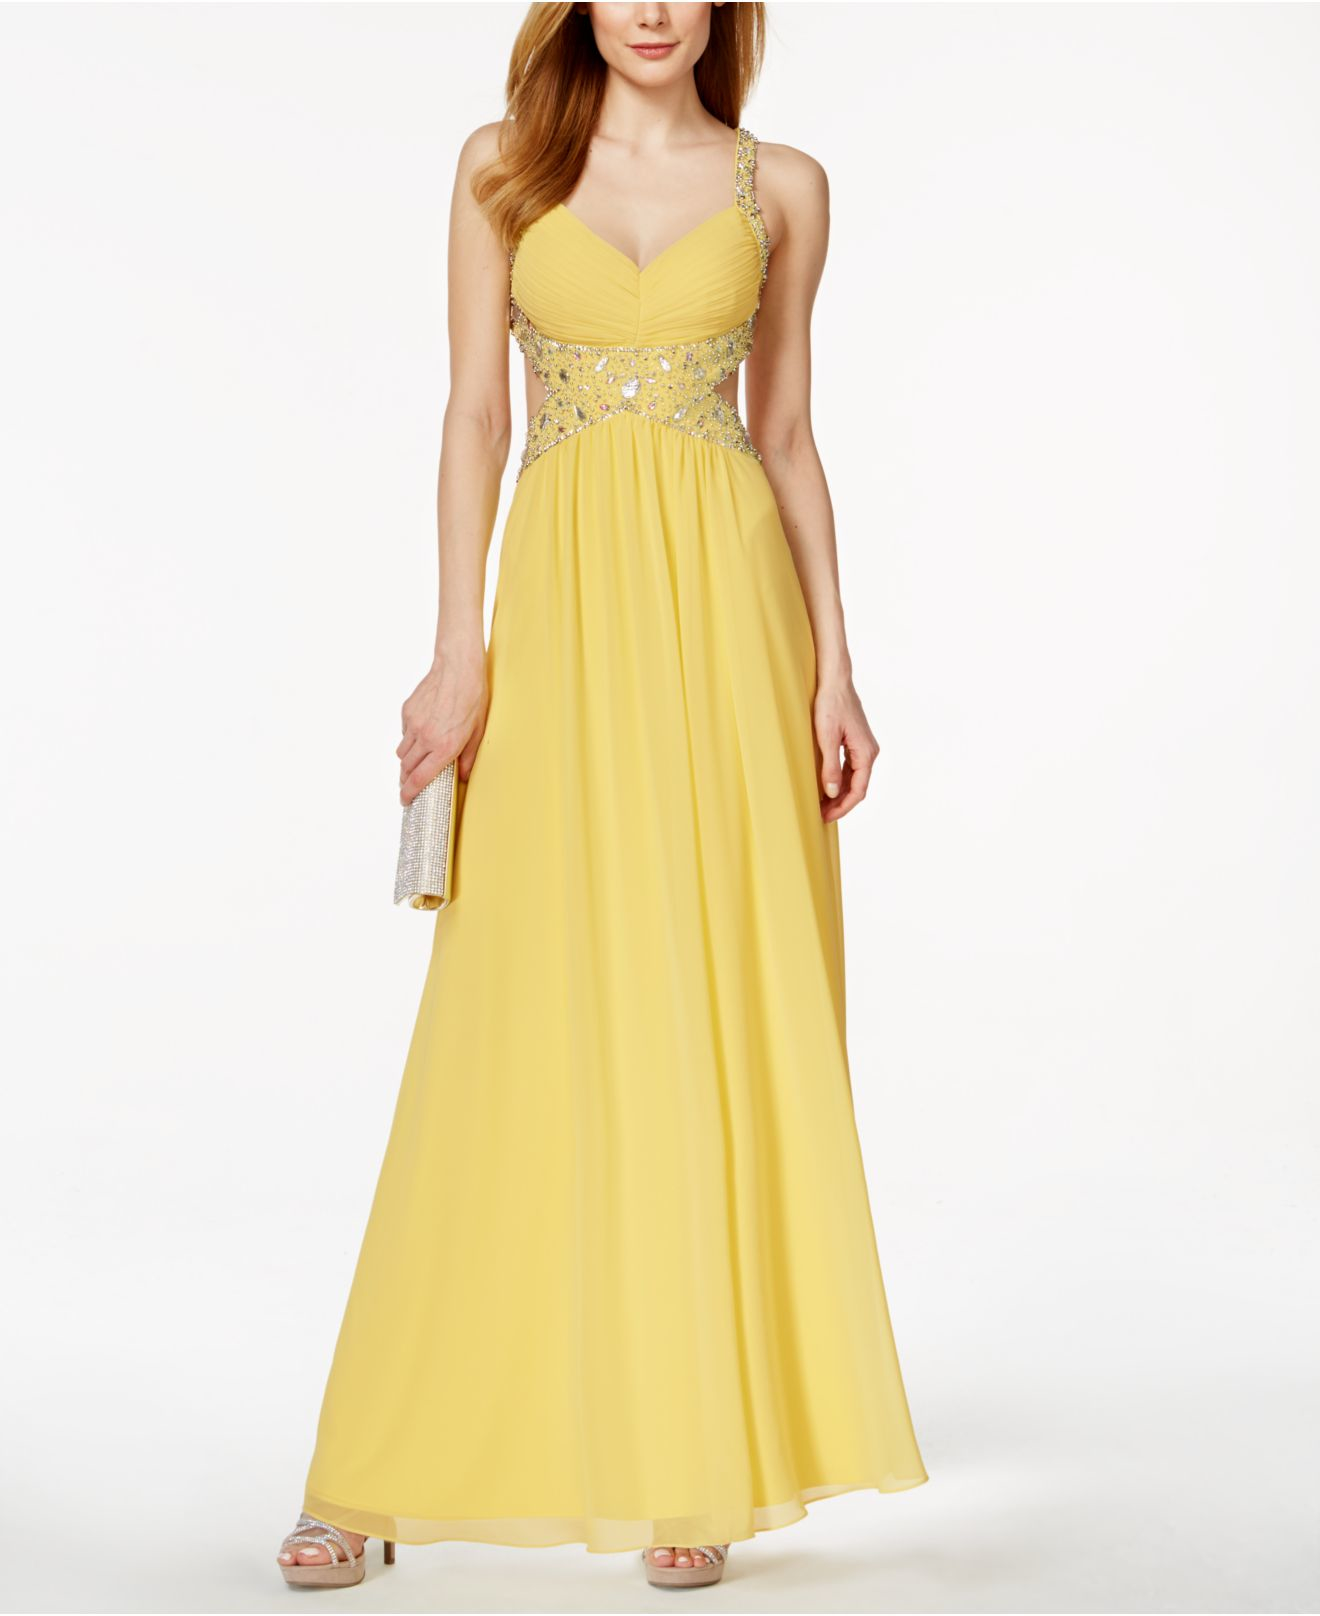 Lyst - Betsy & Adam Chiffon Cutout Embellished Gown in Yellow